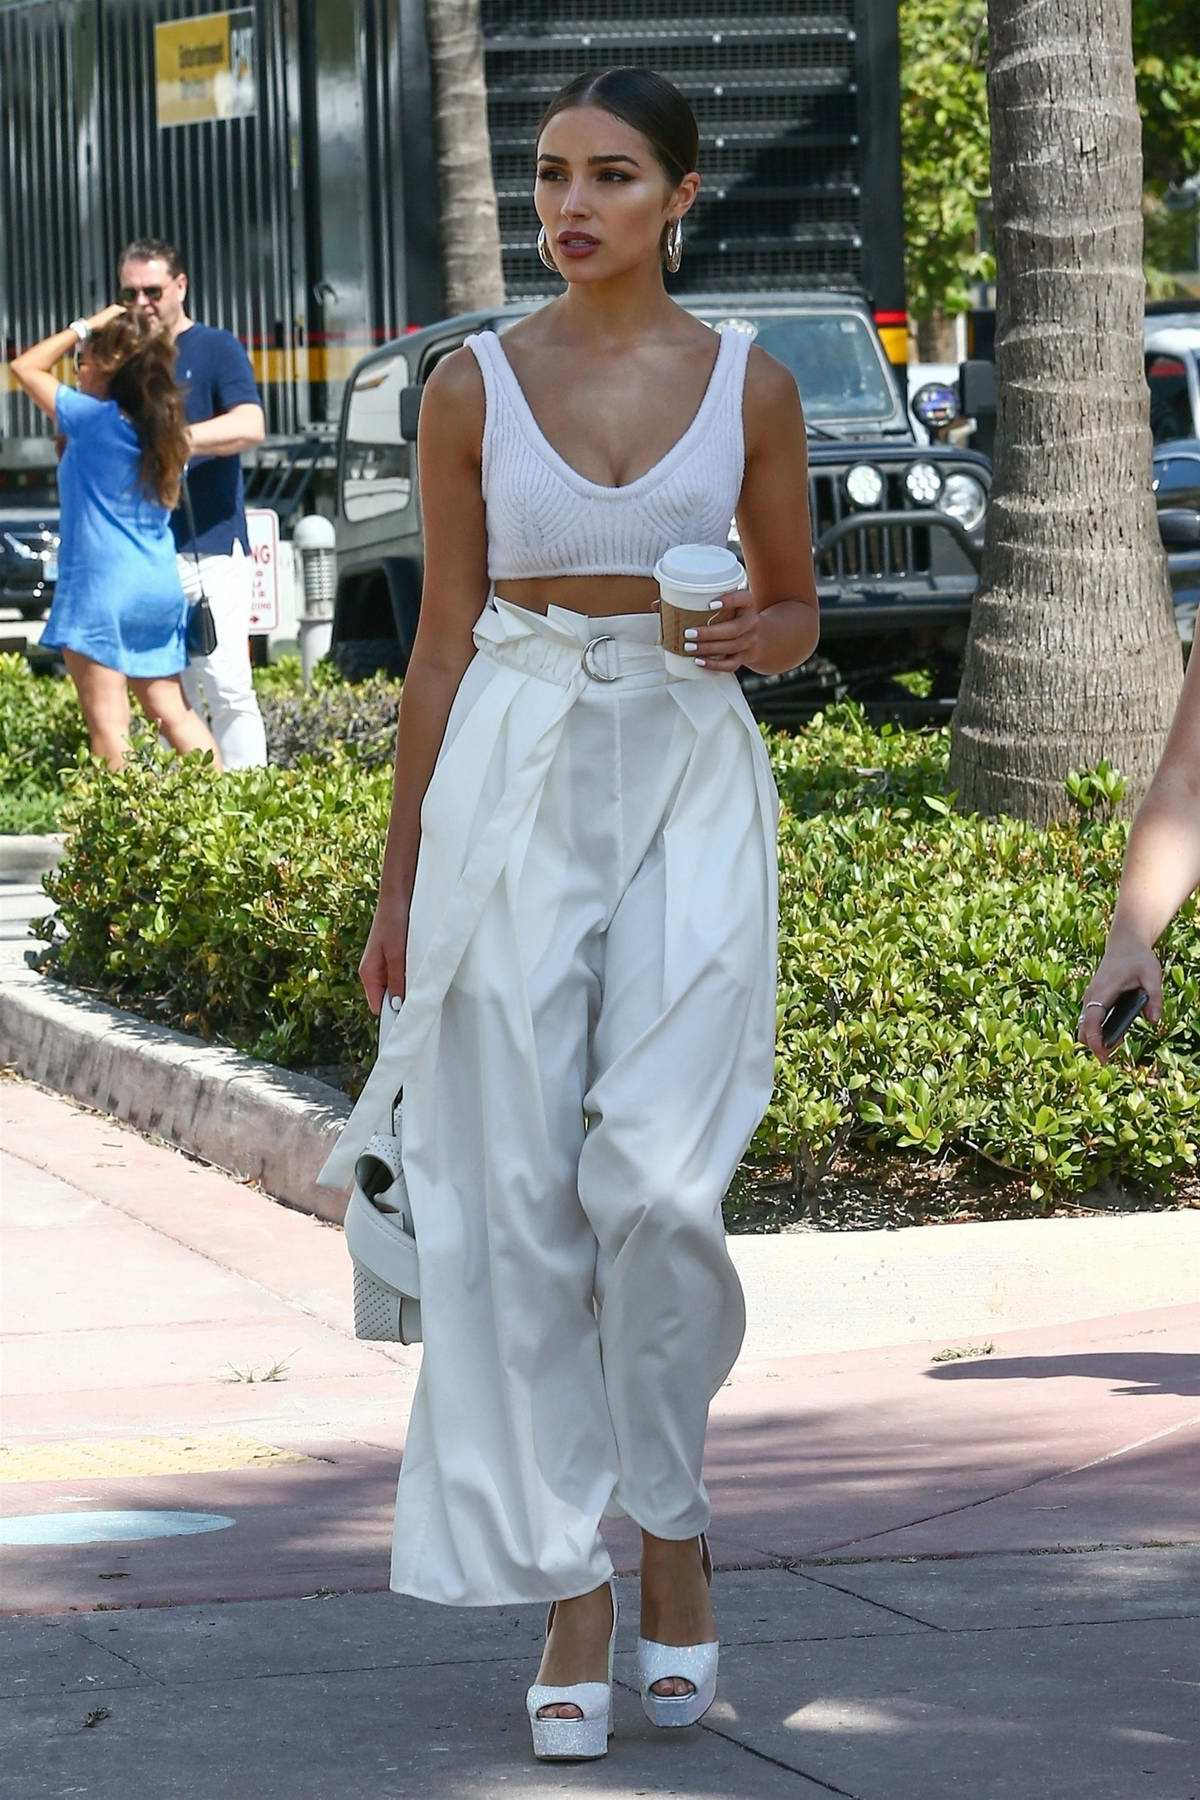 Olivia Culpo looks chic in her all white ensemble while making a coffee run in Miami, Florida